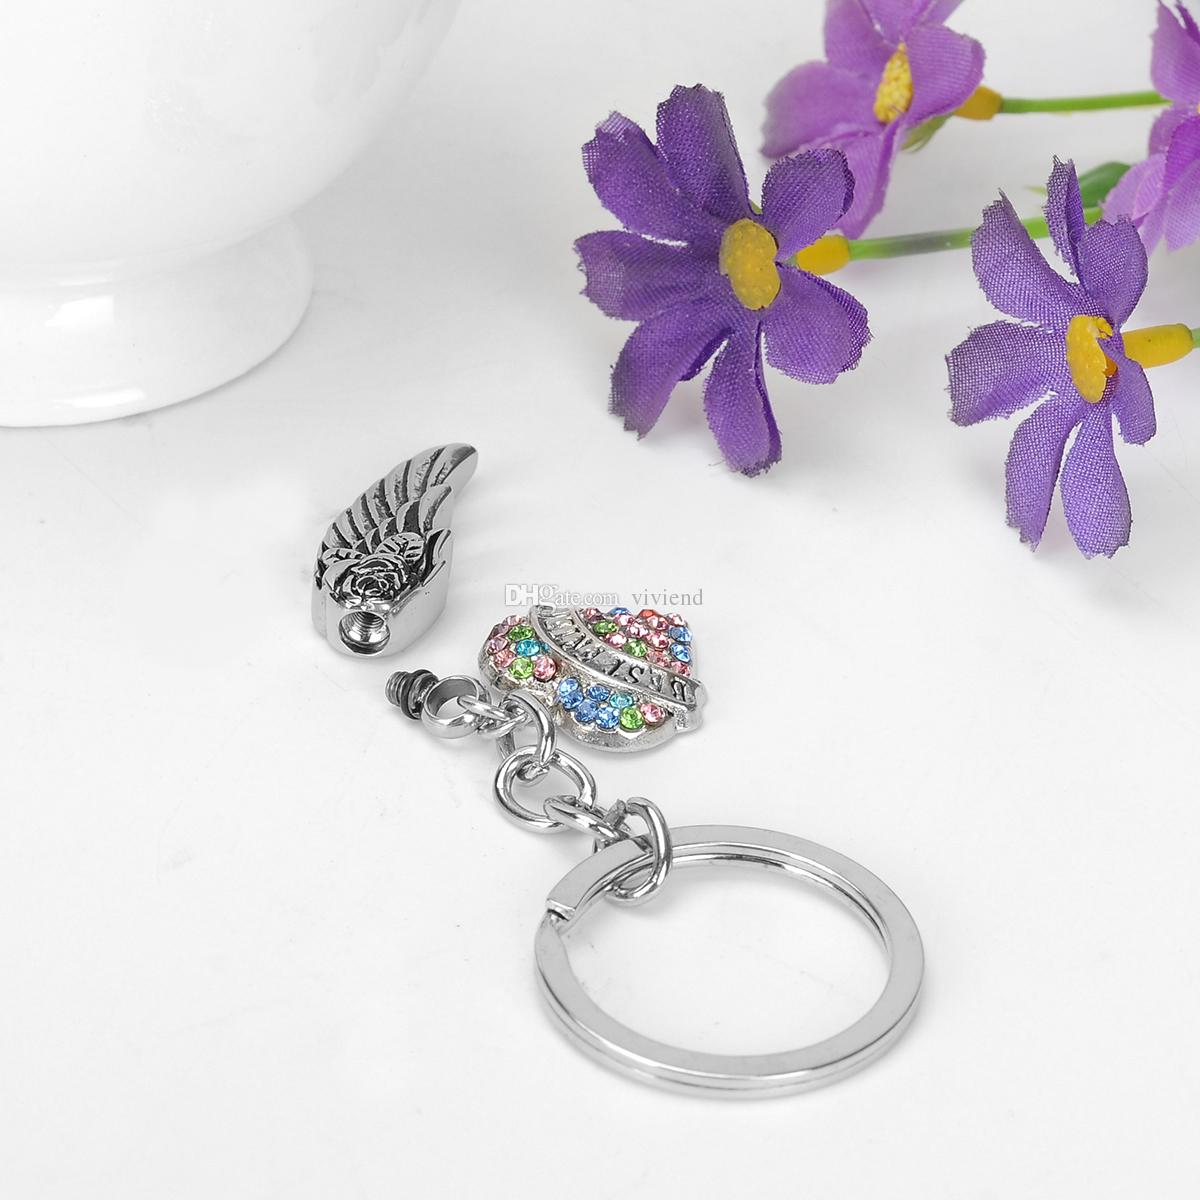 Urn Angel wings Keychain BEST FRIEND in Heart Ashes Memorial Keepsakes Cremation Jewelry with Funnel and Gift Bag